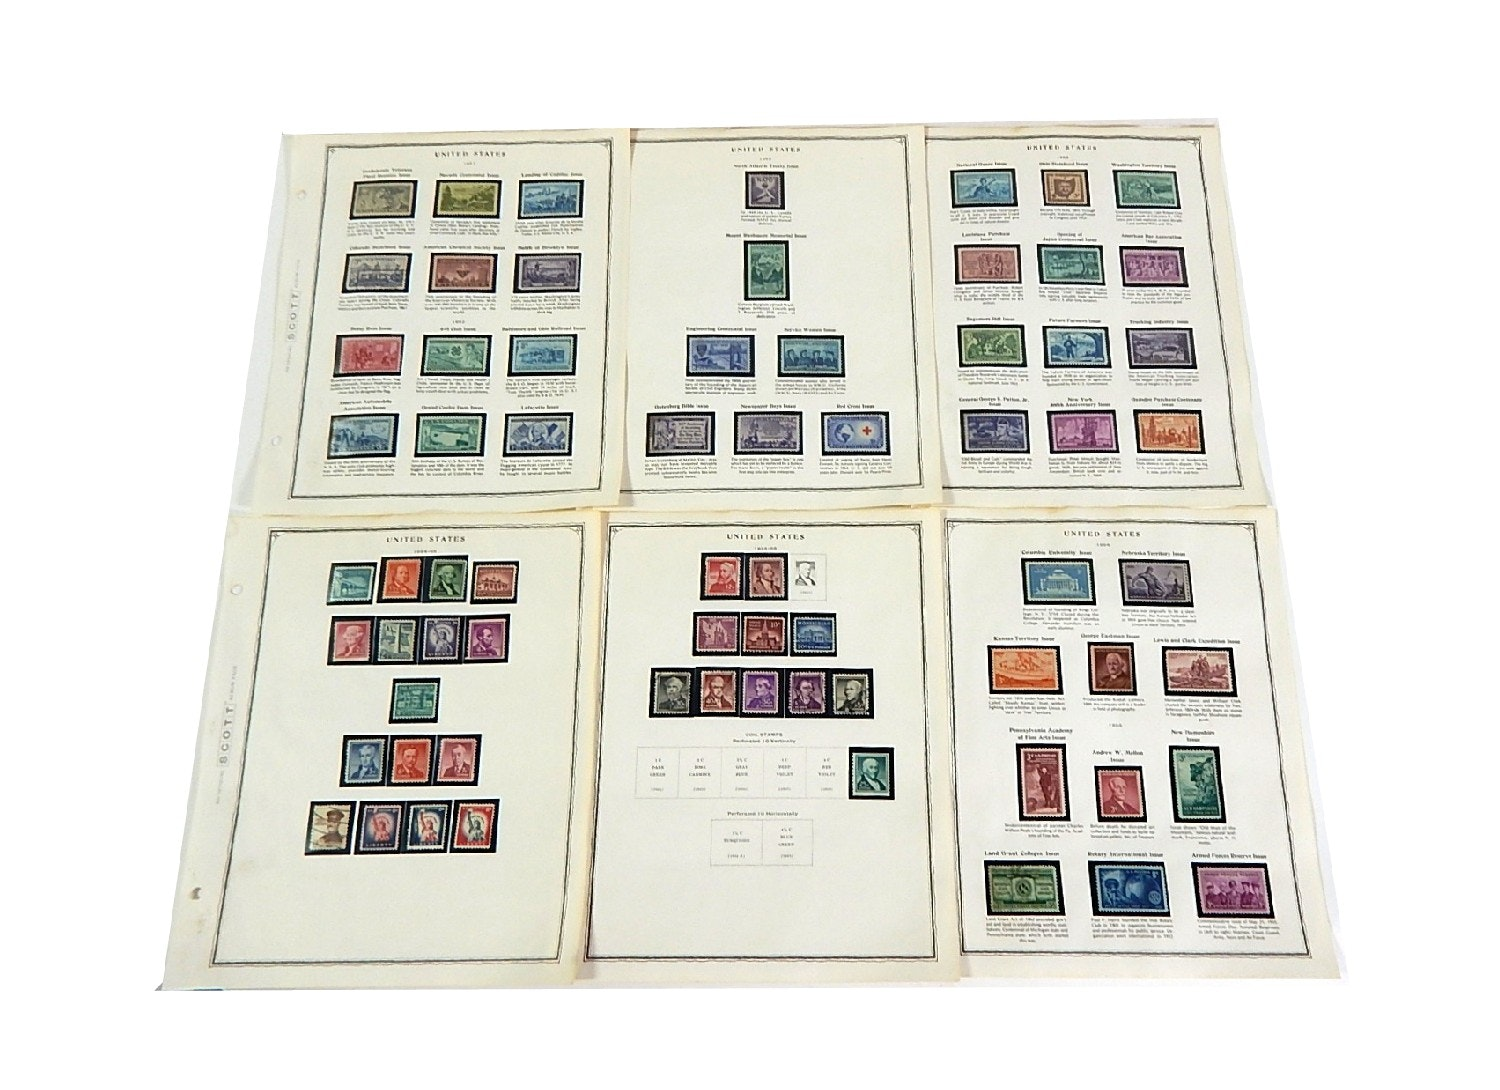 Early 1900s Stamp Collection from Scott Collectors Book - 1951 to 1955